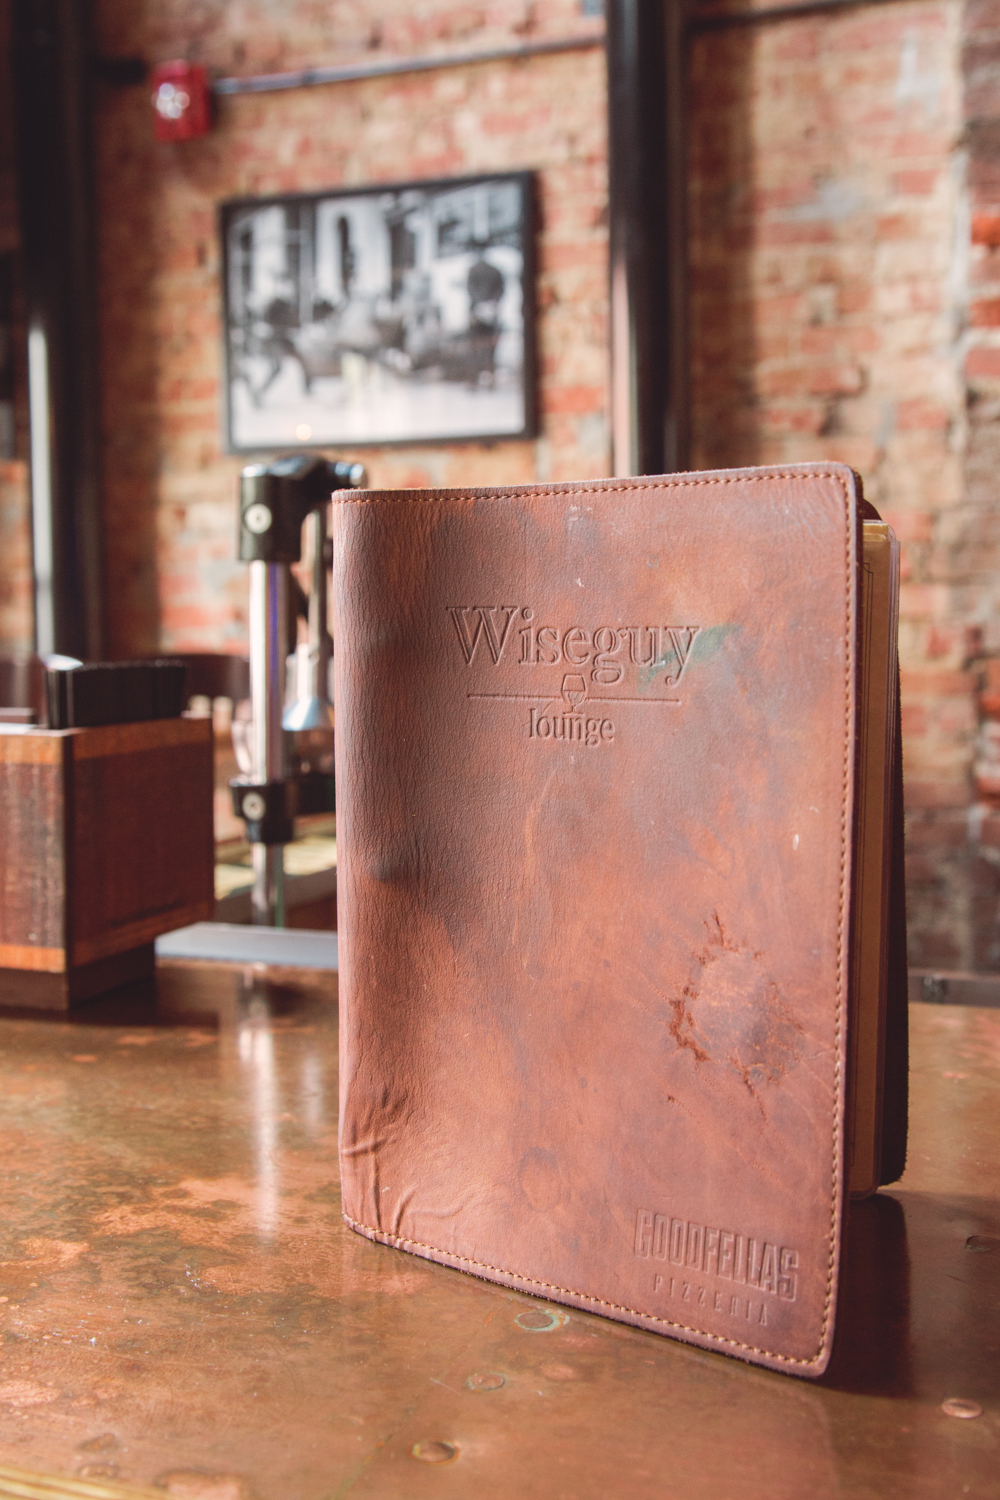 The Over-the-Rhine location of Wiseguy Lounge, located above Goodfellas Pizzeria, is a local speakeasy that features an enormous selection of bourbon and colorful cocktails mixed by experienced barkeeps in Prohibition Era garb. It is located at 1211 Main Street Cincinnati, OH 45202. / Image: Catherine Viox